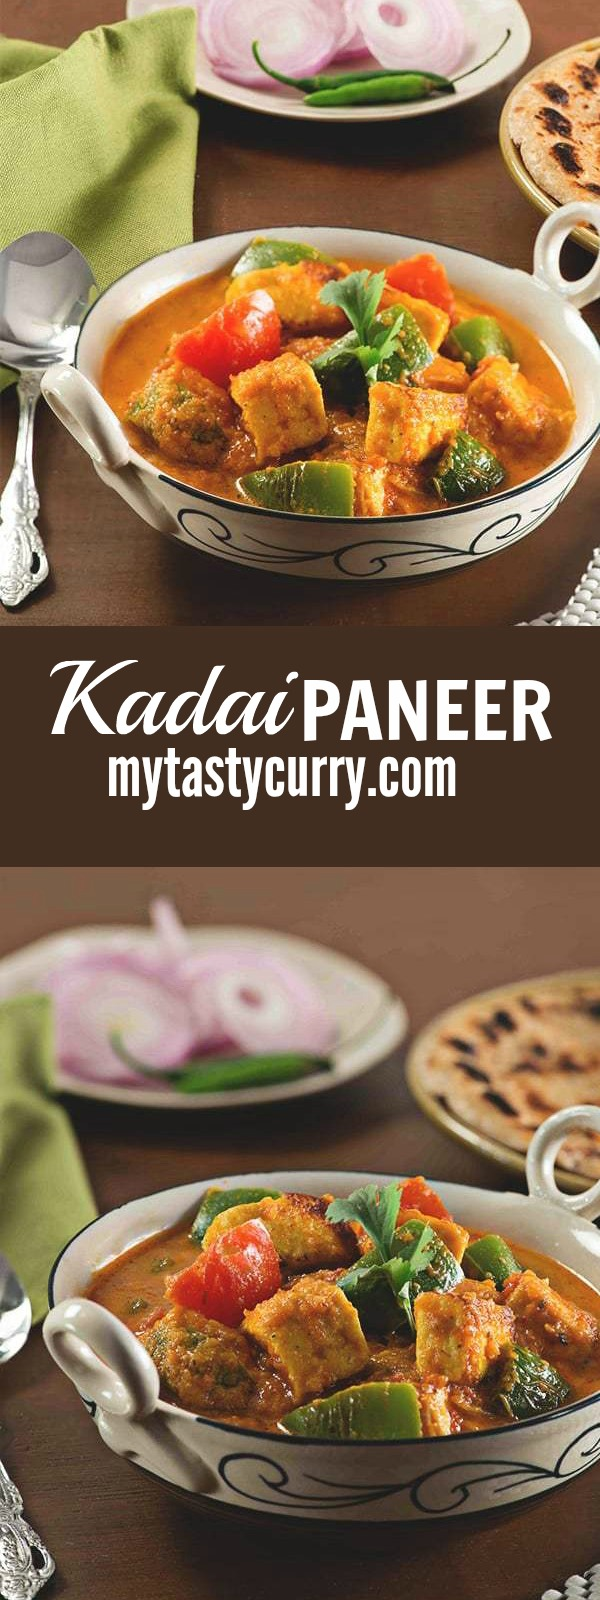 """Punjabi Kadai paneer recipe, a quick and easy recipe with step by step youtube video. This is very aromatic and delicious Kadai paneer gravy also known as kadhai paneer recipe.Indians love Paneer, most of us know this already. If you are a chef or a cooking expert you know how many Times we are asked """"Can I substitute this with paneer"""" however frustrating we may find this but this highlights the fact that Paneer is the most popular substitute for the meat for vegetarians. This easy Indian paneer gravy recipes tastes best with Naan, Roti or Paratha. You can serve it along with jeera rice (Cumin rice) too."""